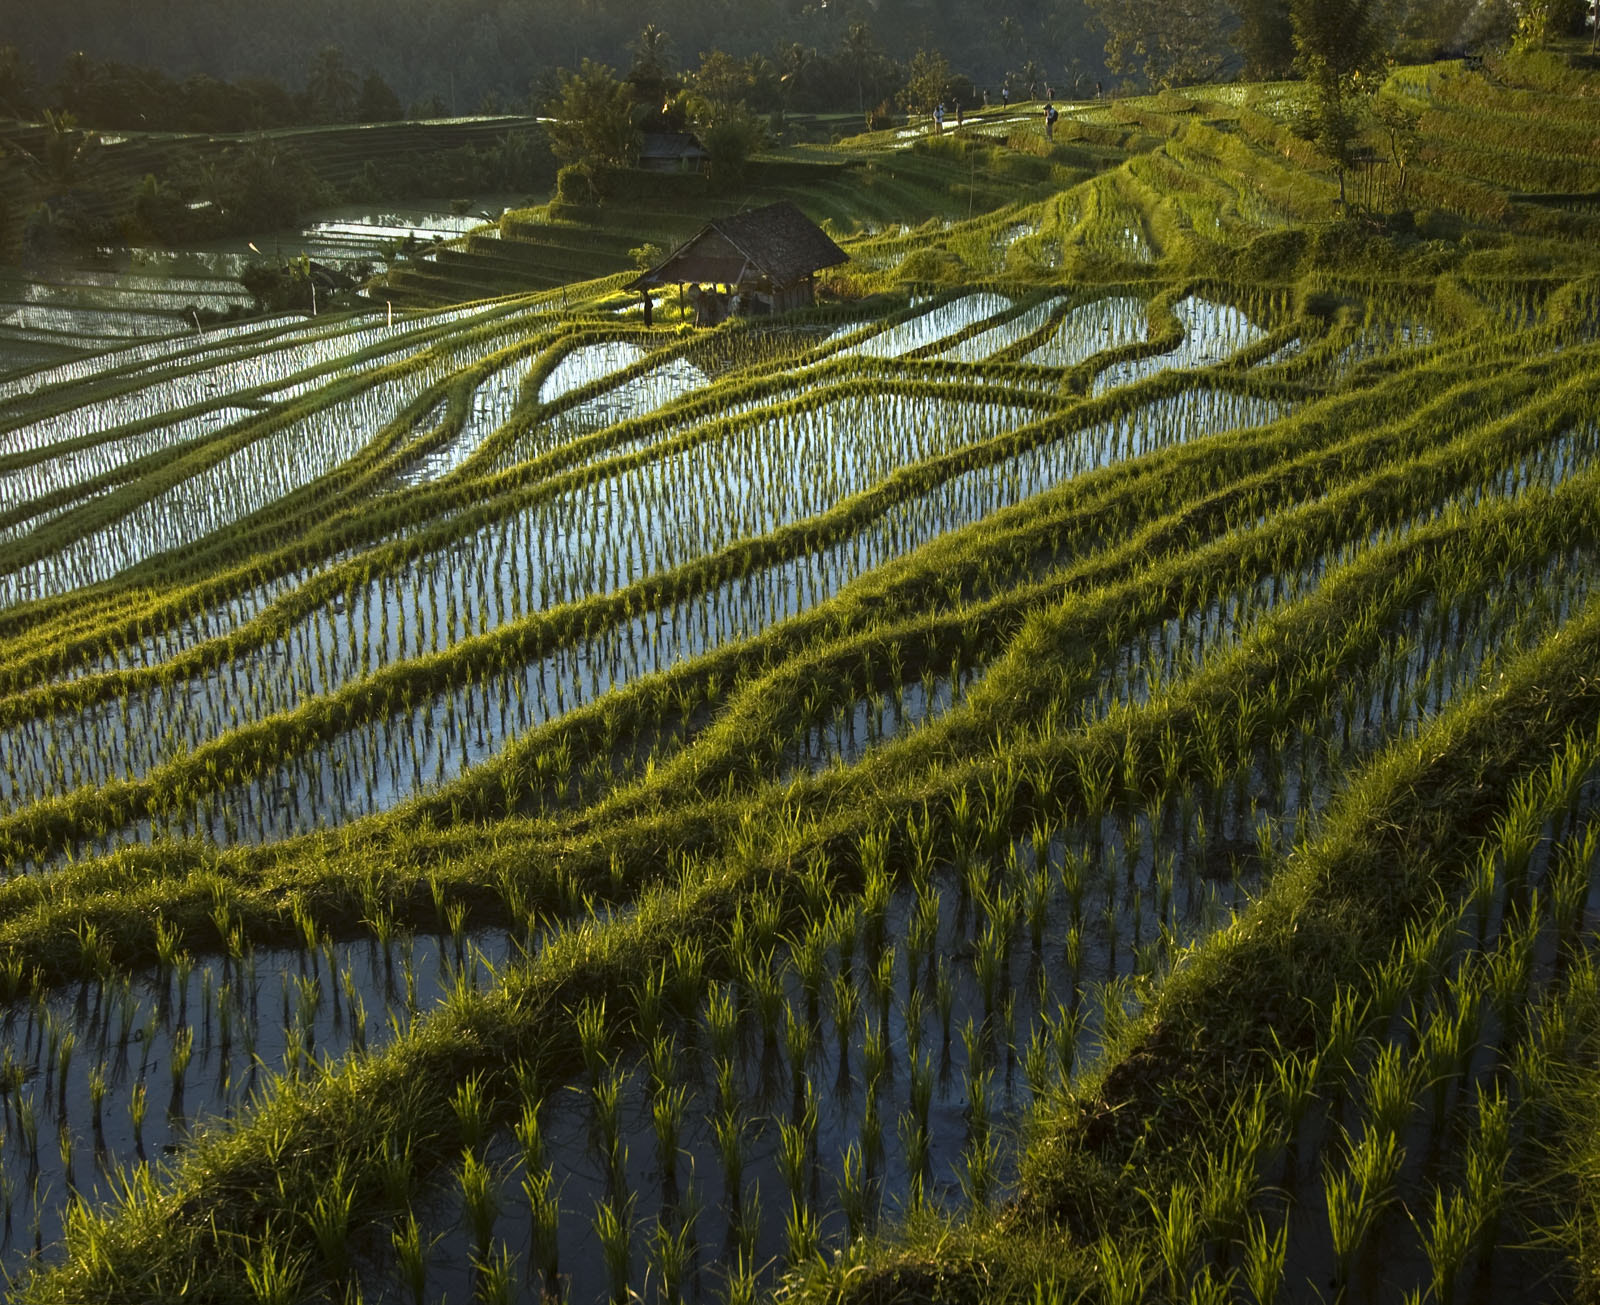 Photograph Rice fields by Saelanwangsa  on 500px